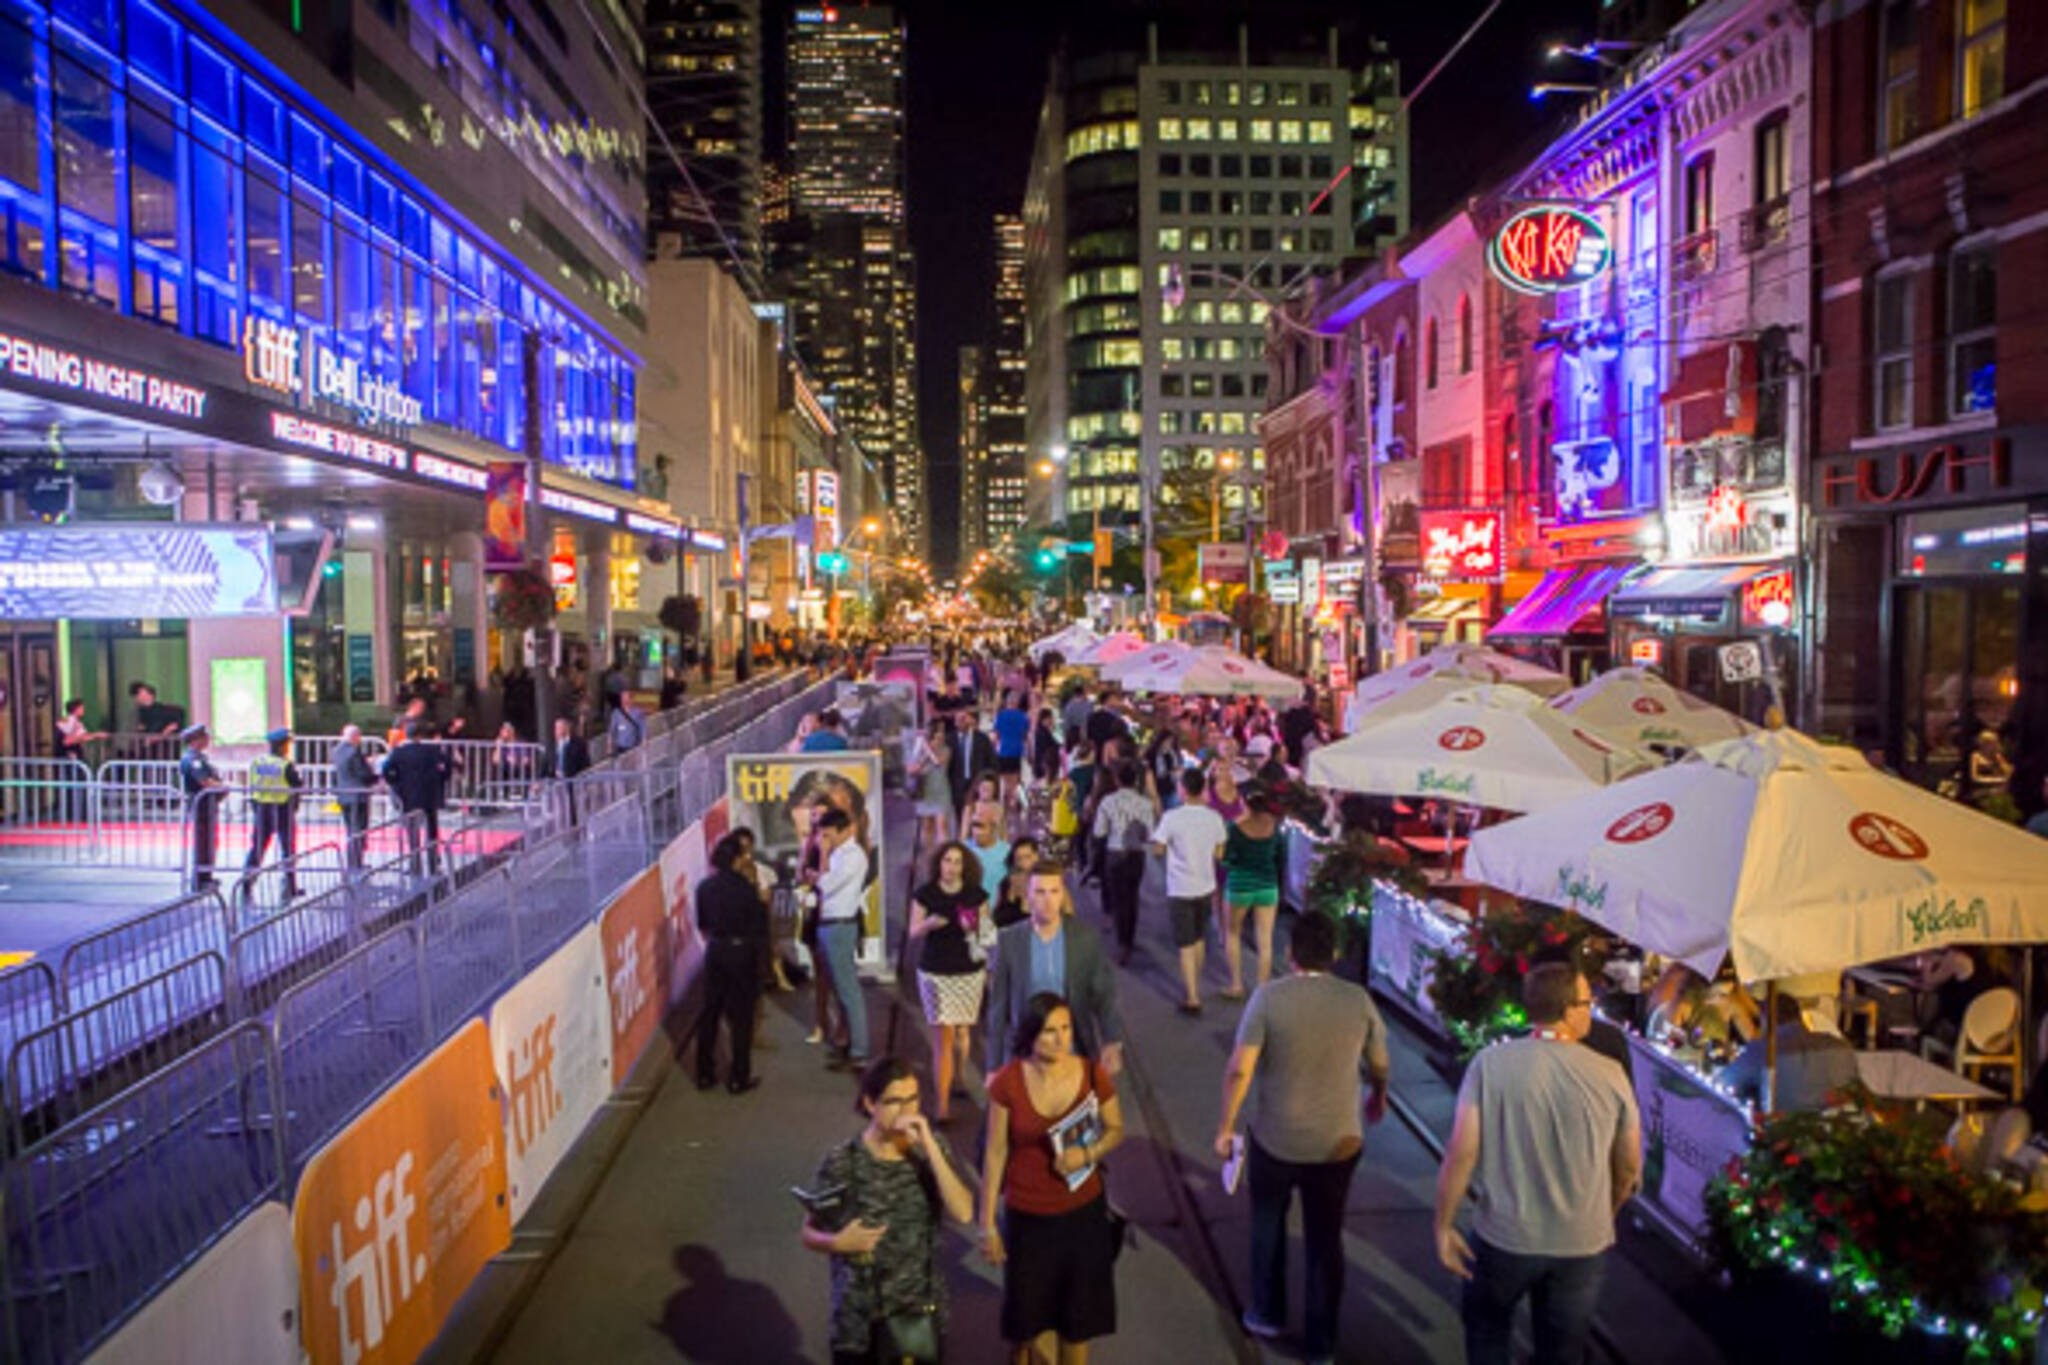 This is what the huge TIFF festival on King St. looks like